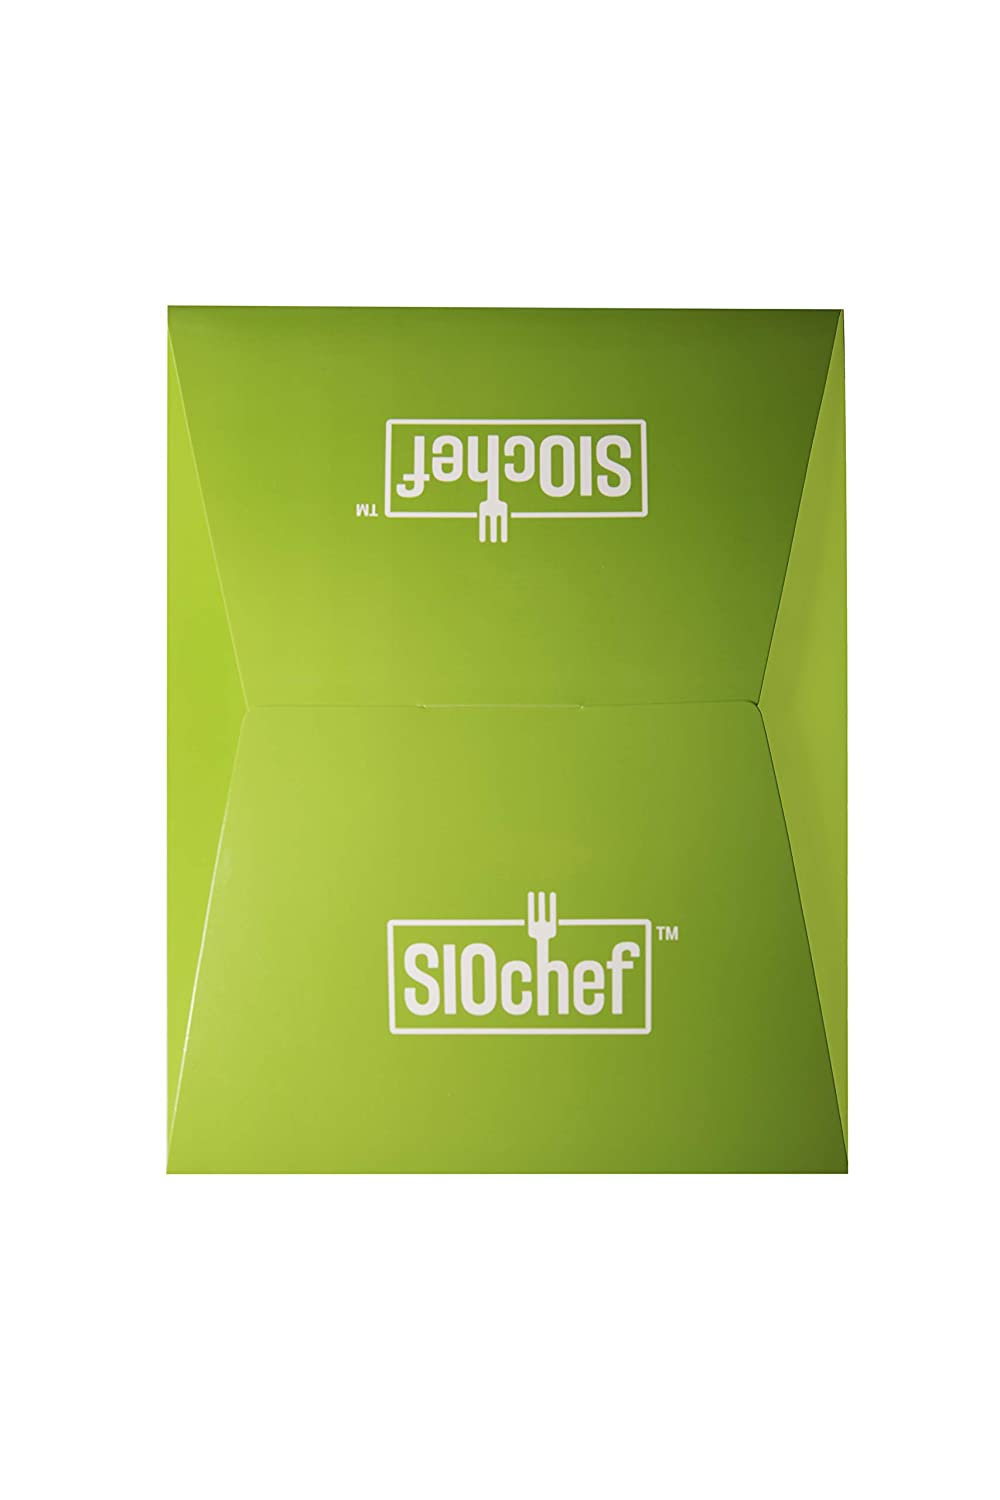 SIOchef Premium Silicone Sous Vide Bags - Reusable, 256oz, 2 Gallon, 16 x 11 inches (2-Pack) (X-Large)